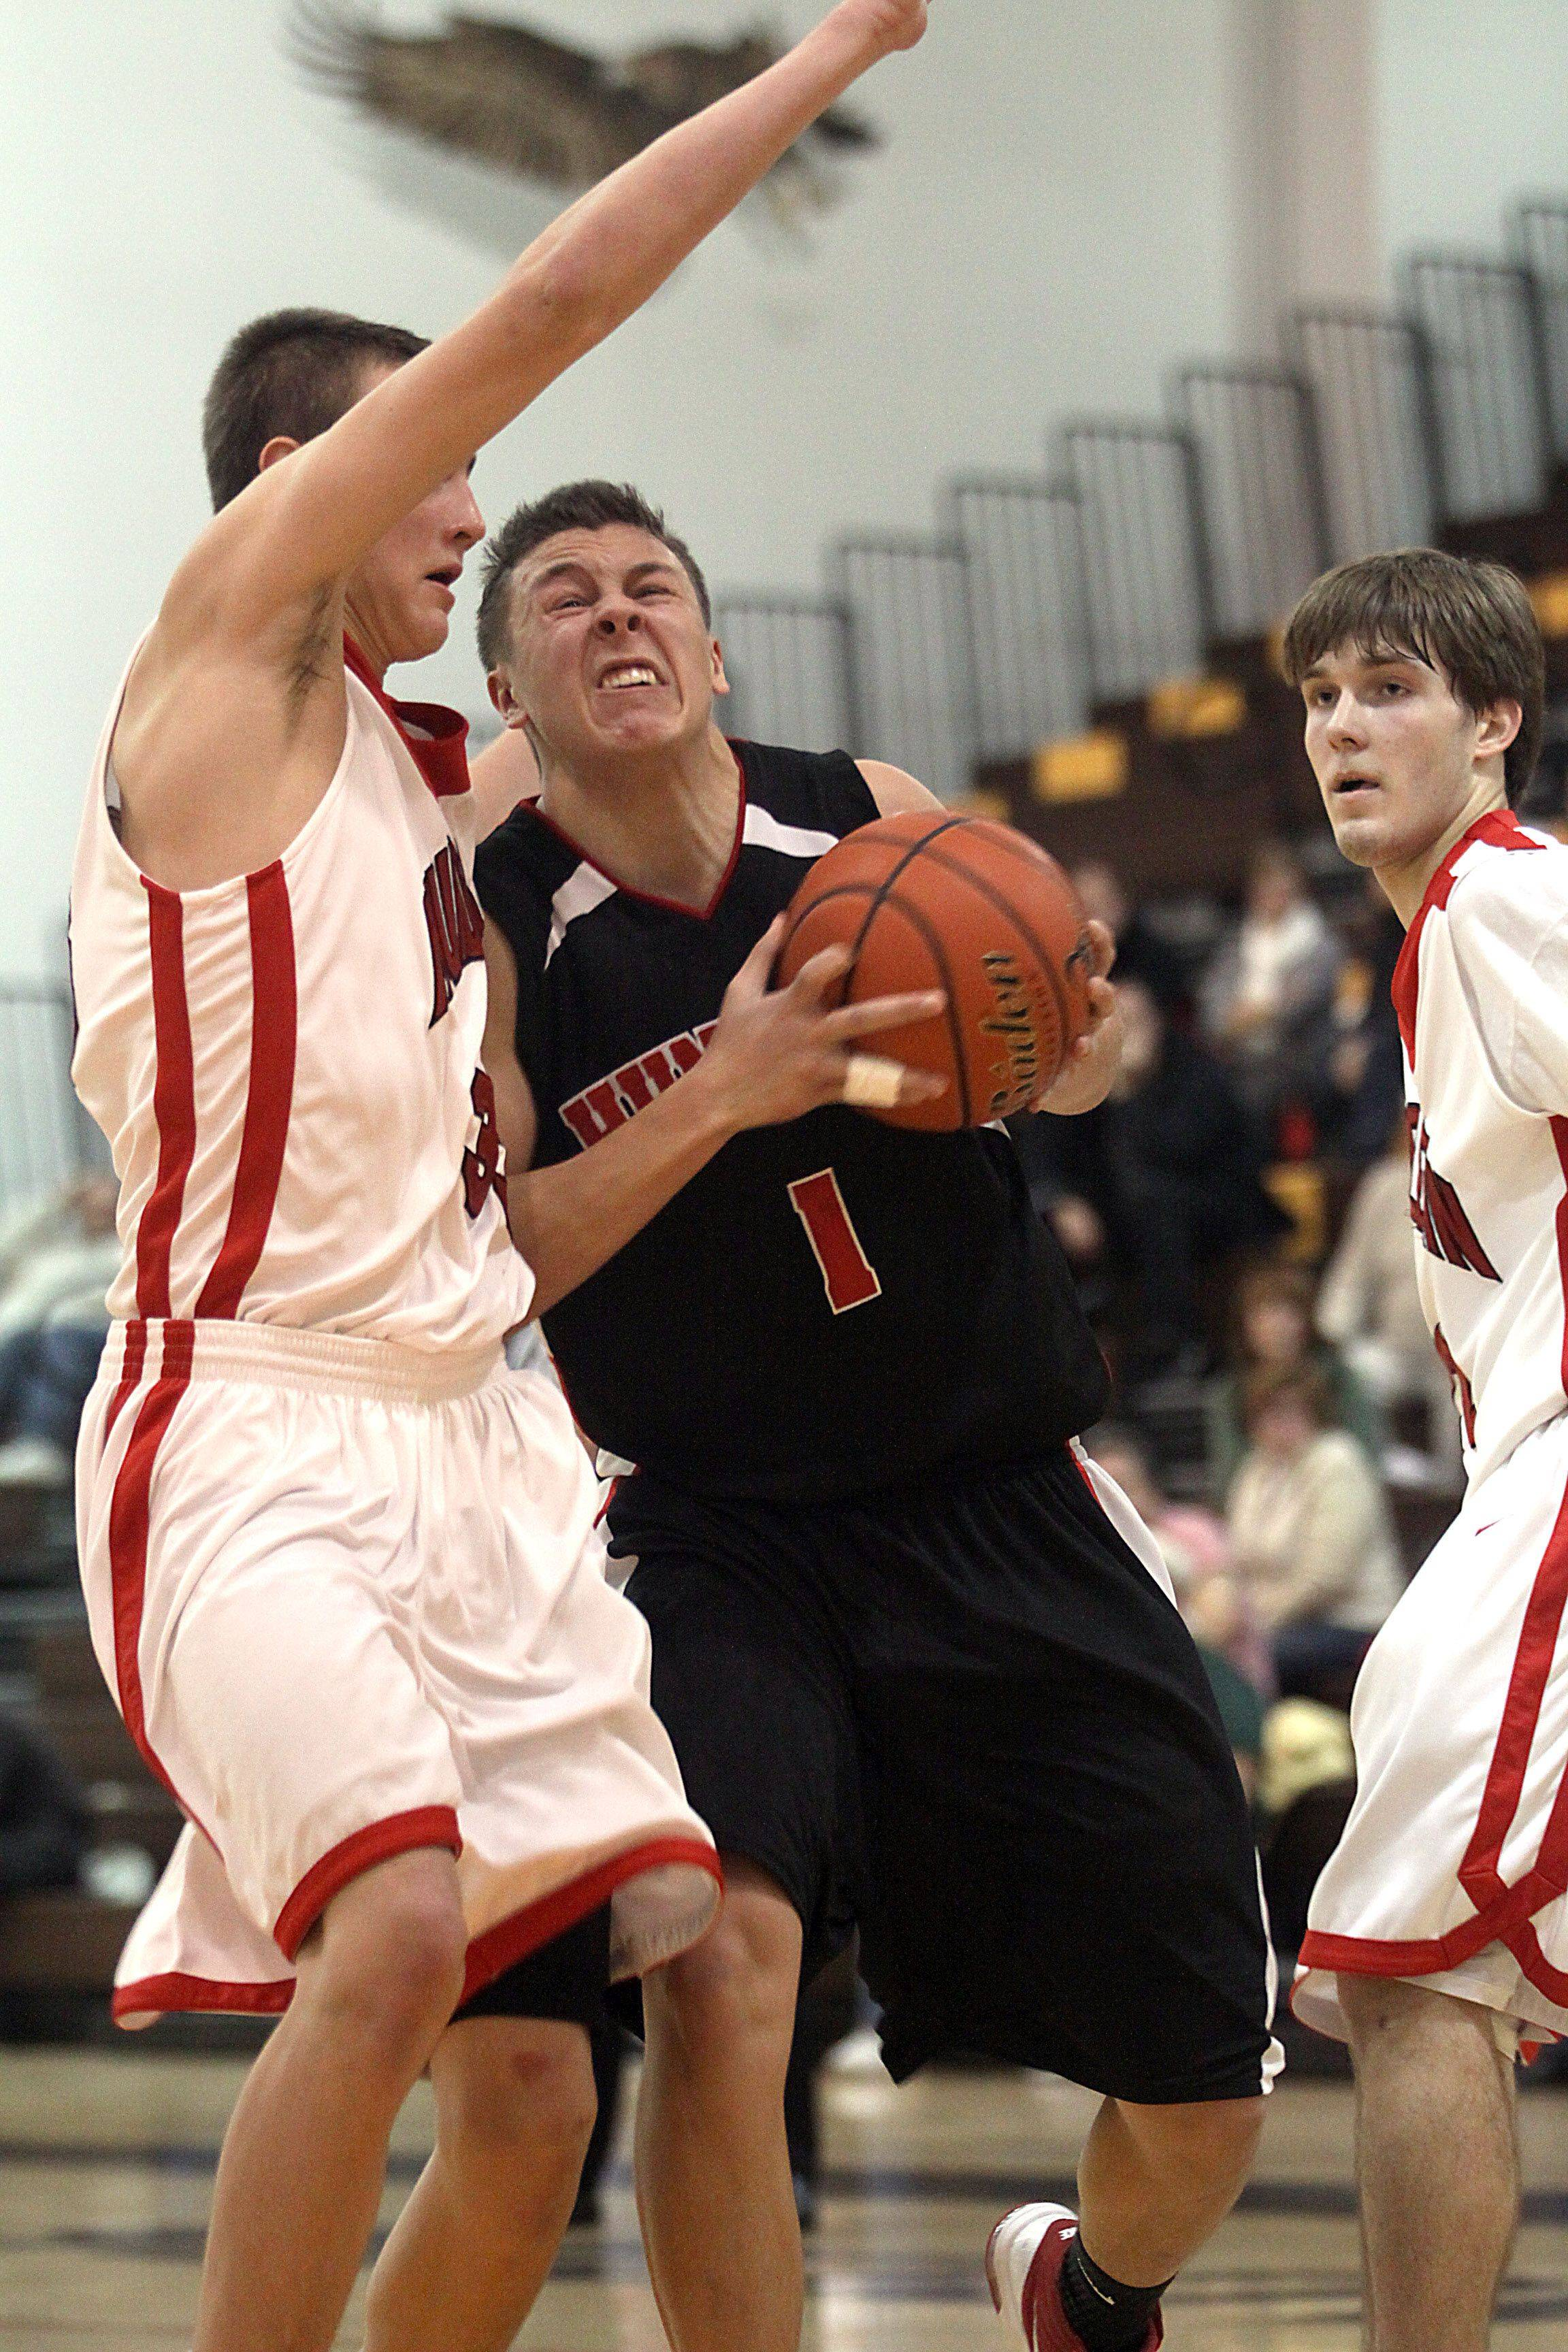 Dec. 23, 2010- Huntley plays Mundelein in the title game of the Jacobs Holiday Classic Boys Basketball Tournament in Algonquin.